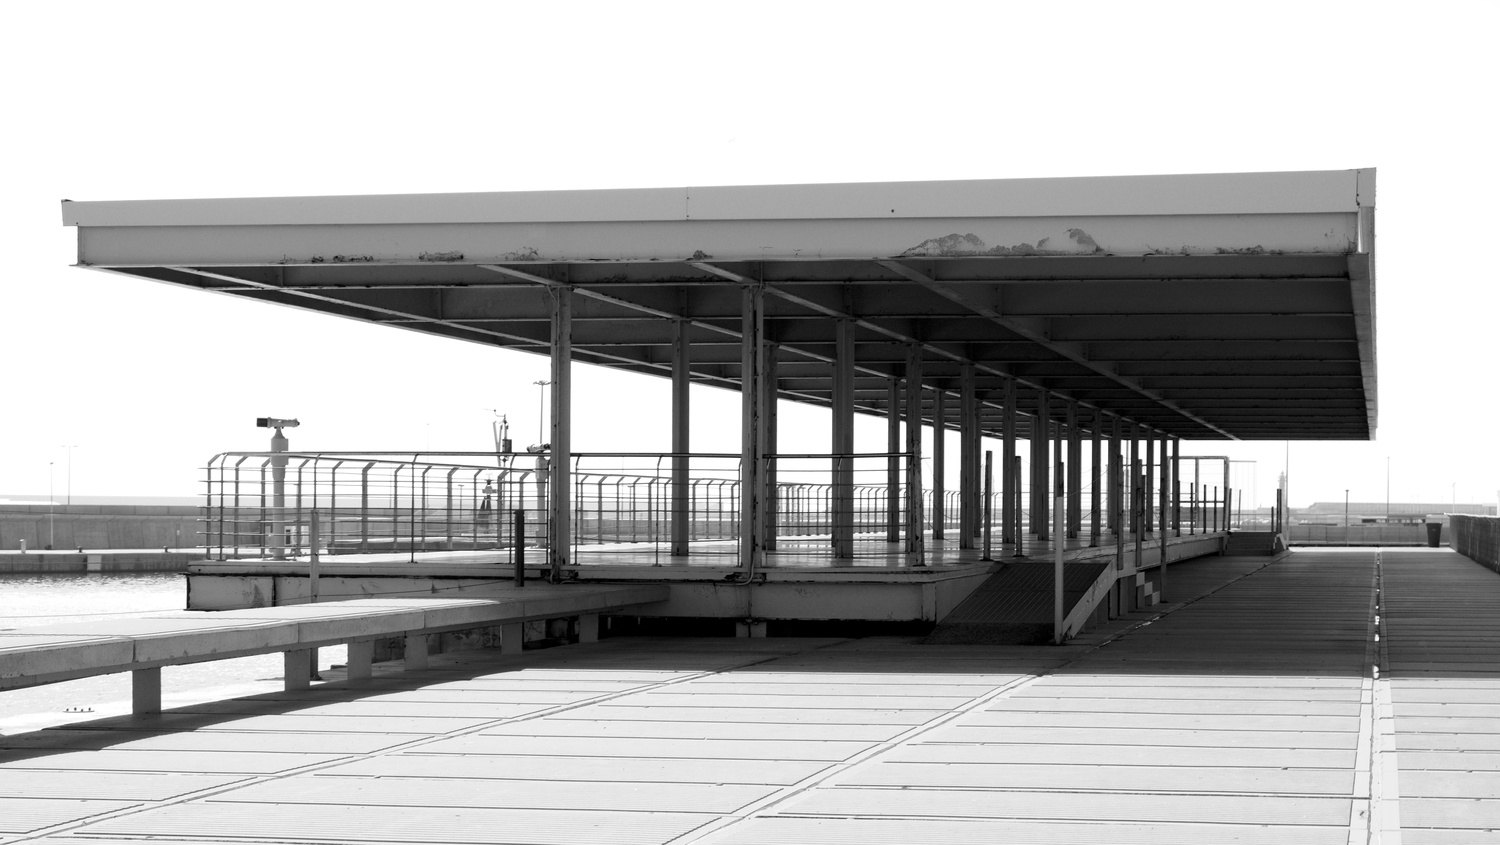 Valencia harbour pier by Cees Albers